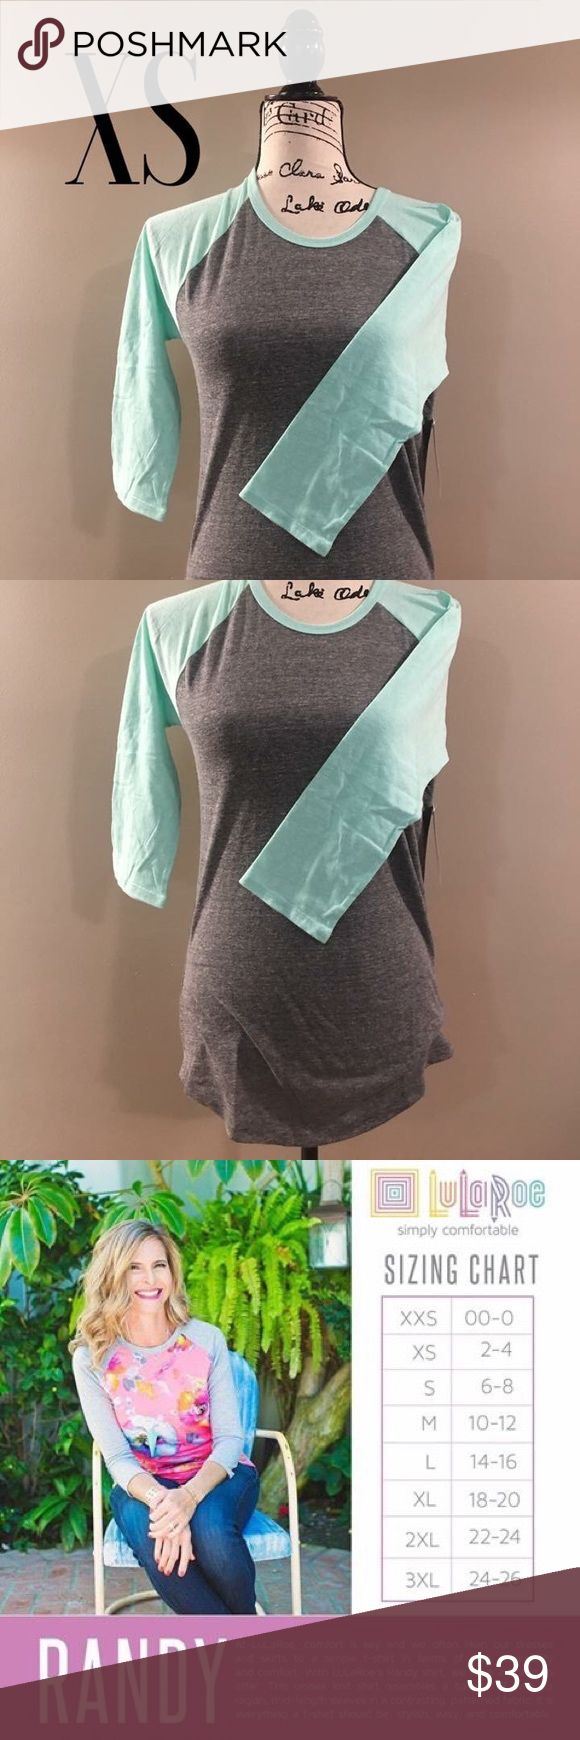 NWT LuLaRoe XS Randy NWT baseball style 3/4 sleeved top. Sleeves are a light teal color with dark heathered grey bodice. Bottom of shirt has a scoop design that nicely covers your bottom (perfect for when wearing leggings). Can also go great with jeans, shorts or a skirt. Reference sizing chart to ensure correct size. (Can size up or down depending on how loose or tight of a fit you're looking for) LuLaRoe Tops